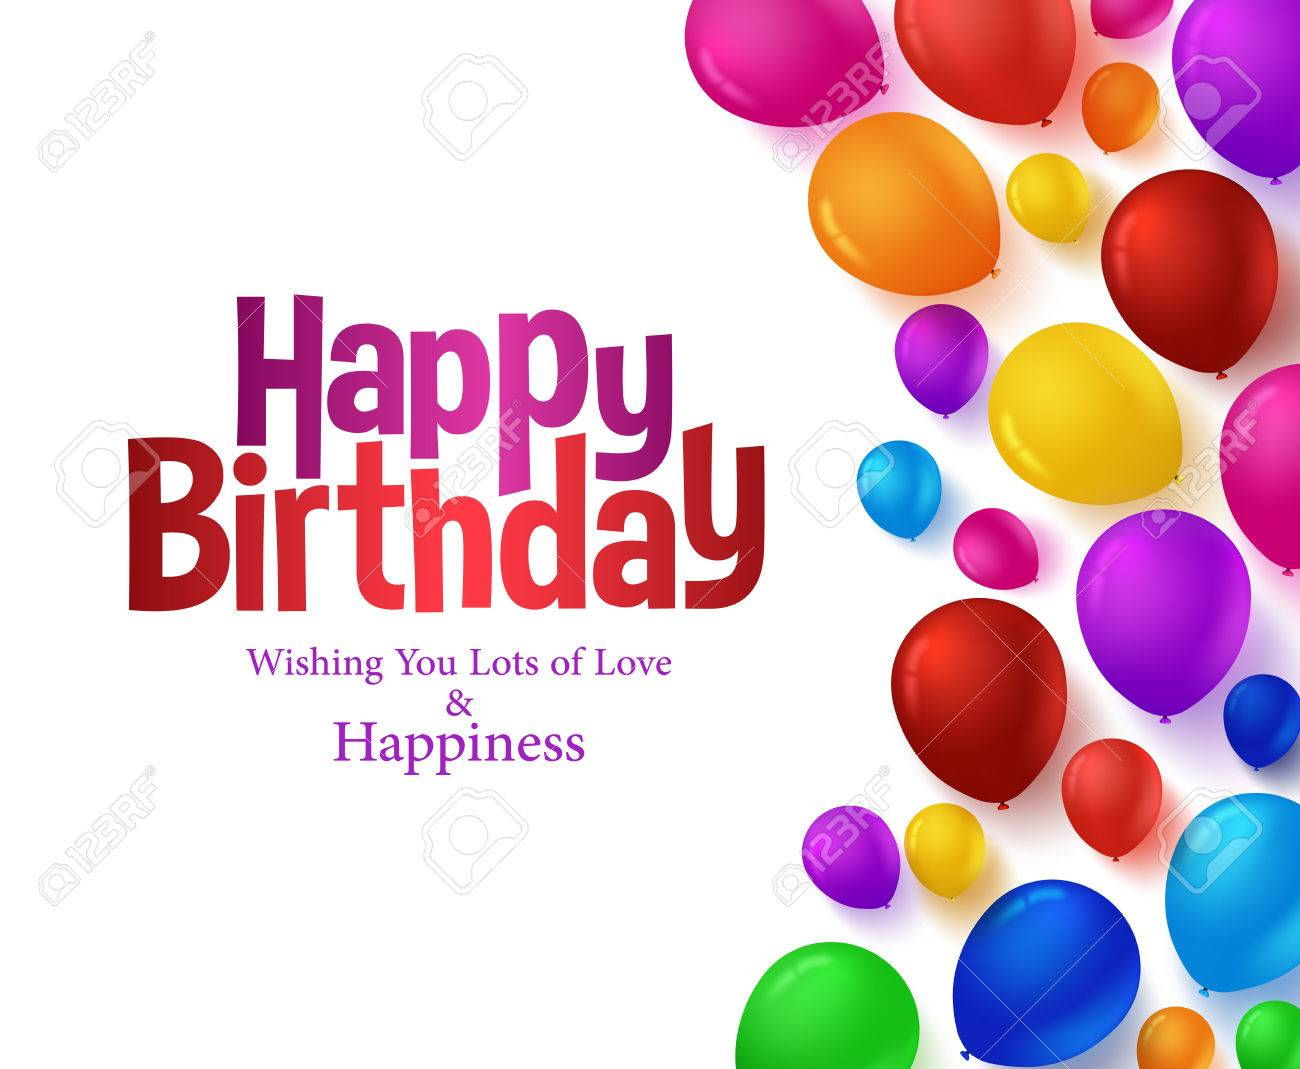 3d Realistic Colorful Bunch of Happy Birthday Balloons Background for Party and Celebrations With Space for Text Isolated in White. Vector Illustration - 48167516